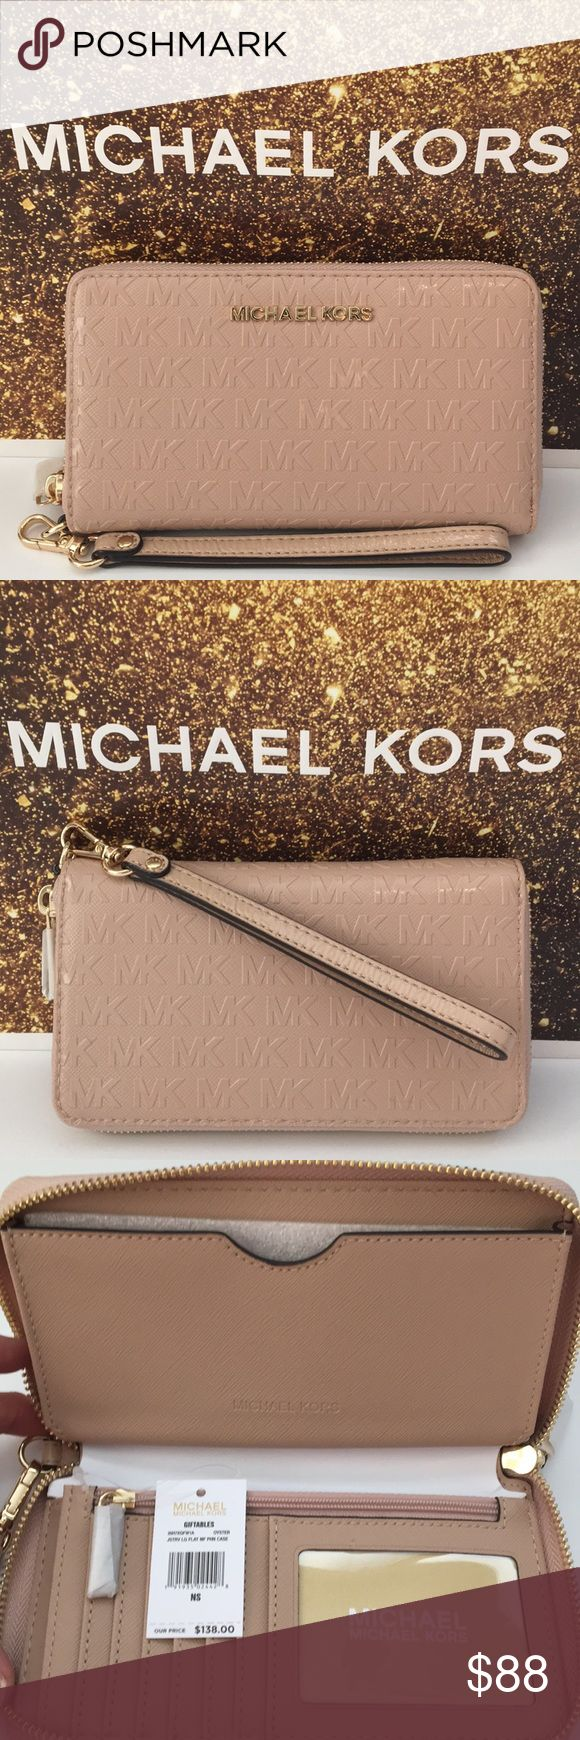 "Michael Kors Smartphone Wristlet, Oyster Color This authentic Michael Kors oyster-colored leather sleek wristlet is covered with the classic embossed MK logo. It features a dedicated pocket for your phone. It's a ""one–size–fits–all"" wristlet that is designed to fit most models of iPhone, Samsung Halaxy and Blackberry phones. It also has 7 card slots, one ID window, 1 zippered compartment, gold–tone hardware and top–zip fastening. Great for effortless every day wear and travel.  It will look…"